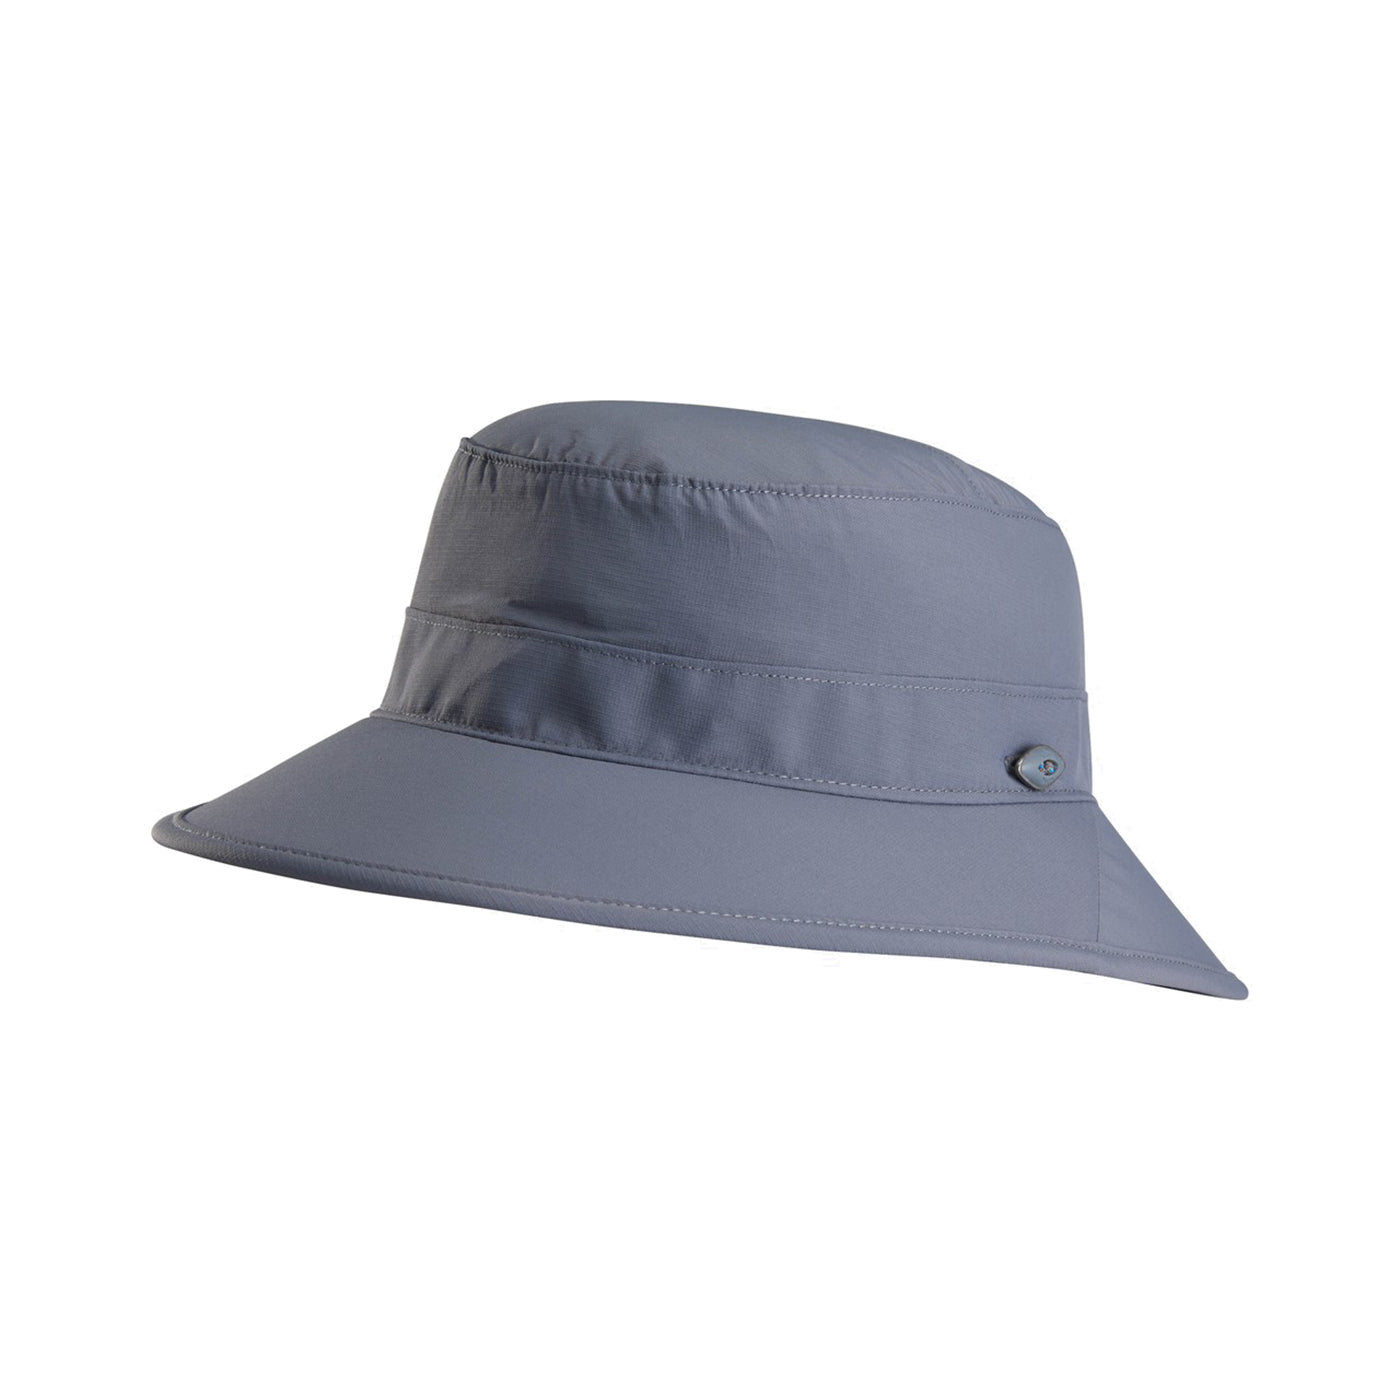 kuhl sunblade sun hat three quarter view in color grey blue